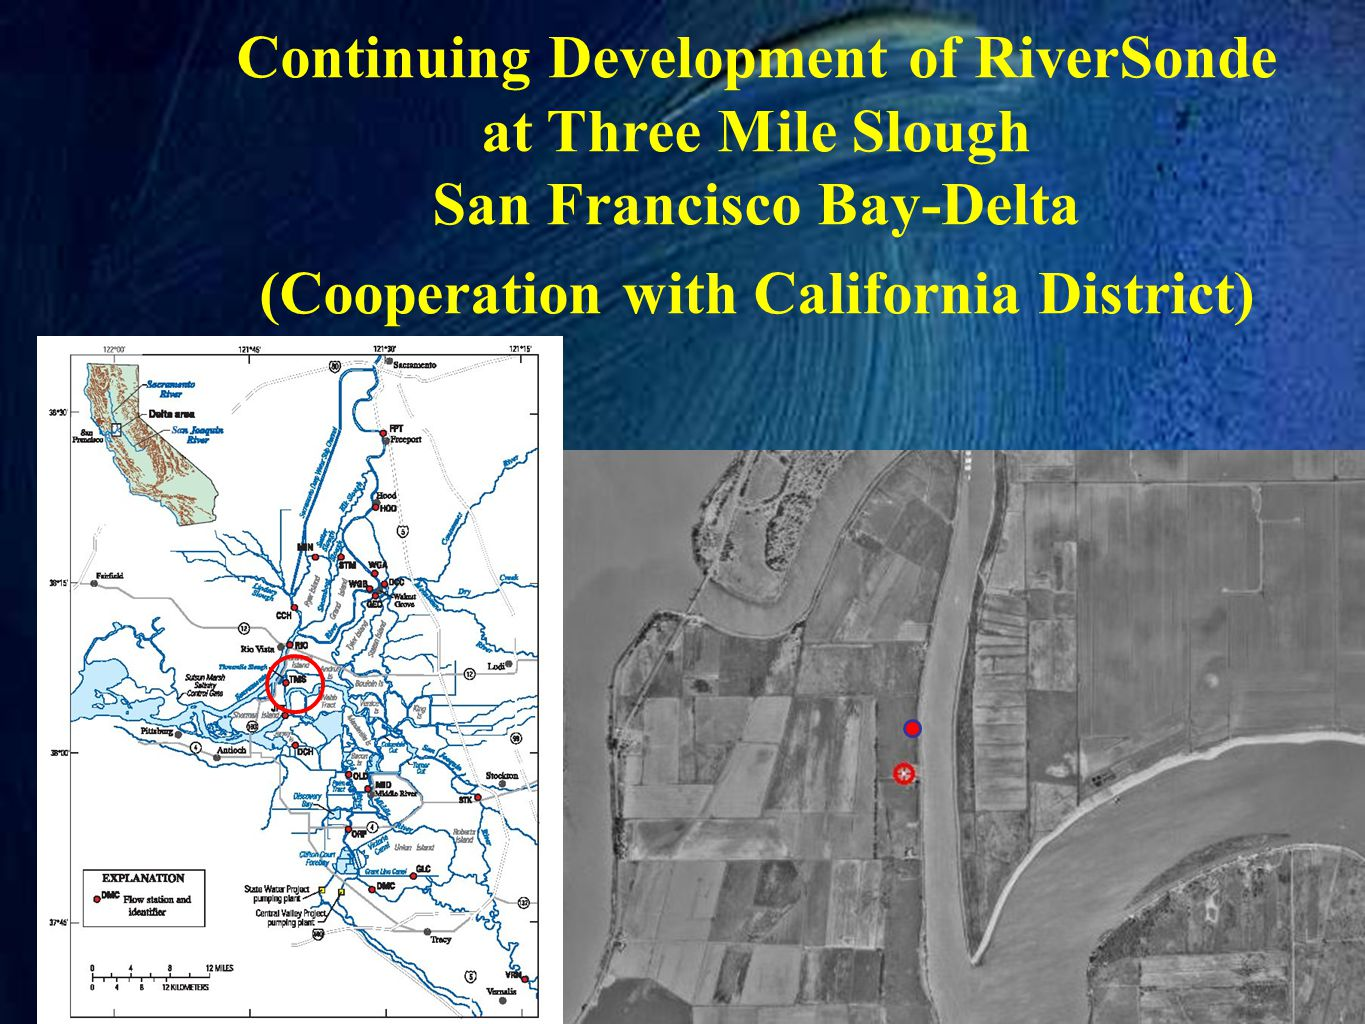 Continuing Development of RiverSonde at Three Mile Slough